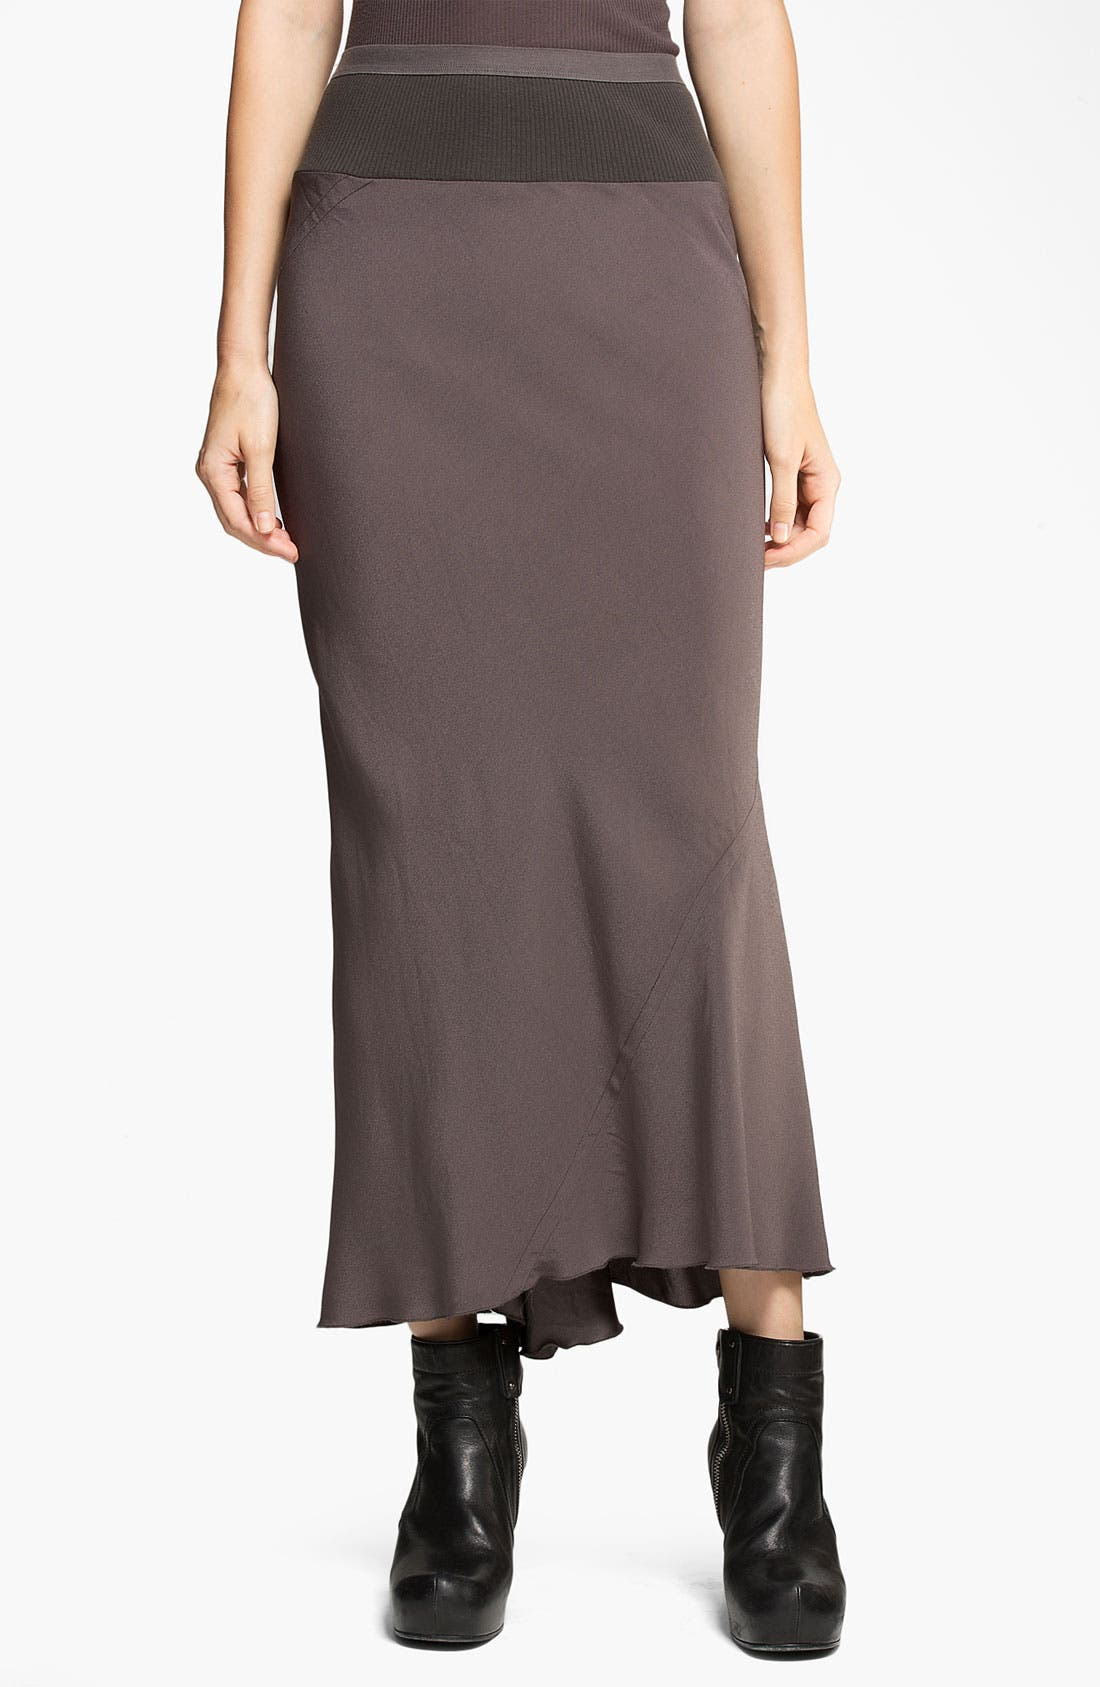 Alternate Image 1 Selected - Rick Owens Crepe Midi Skirt